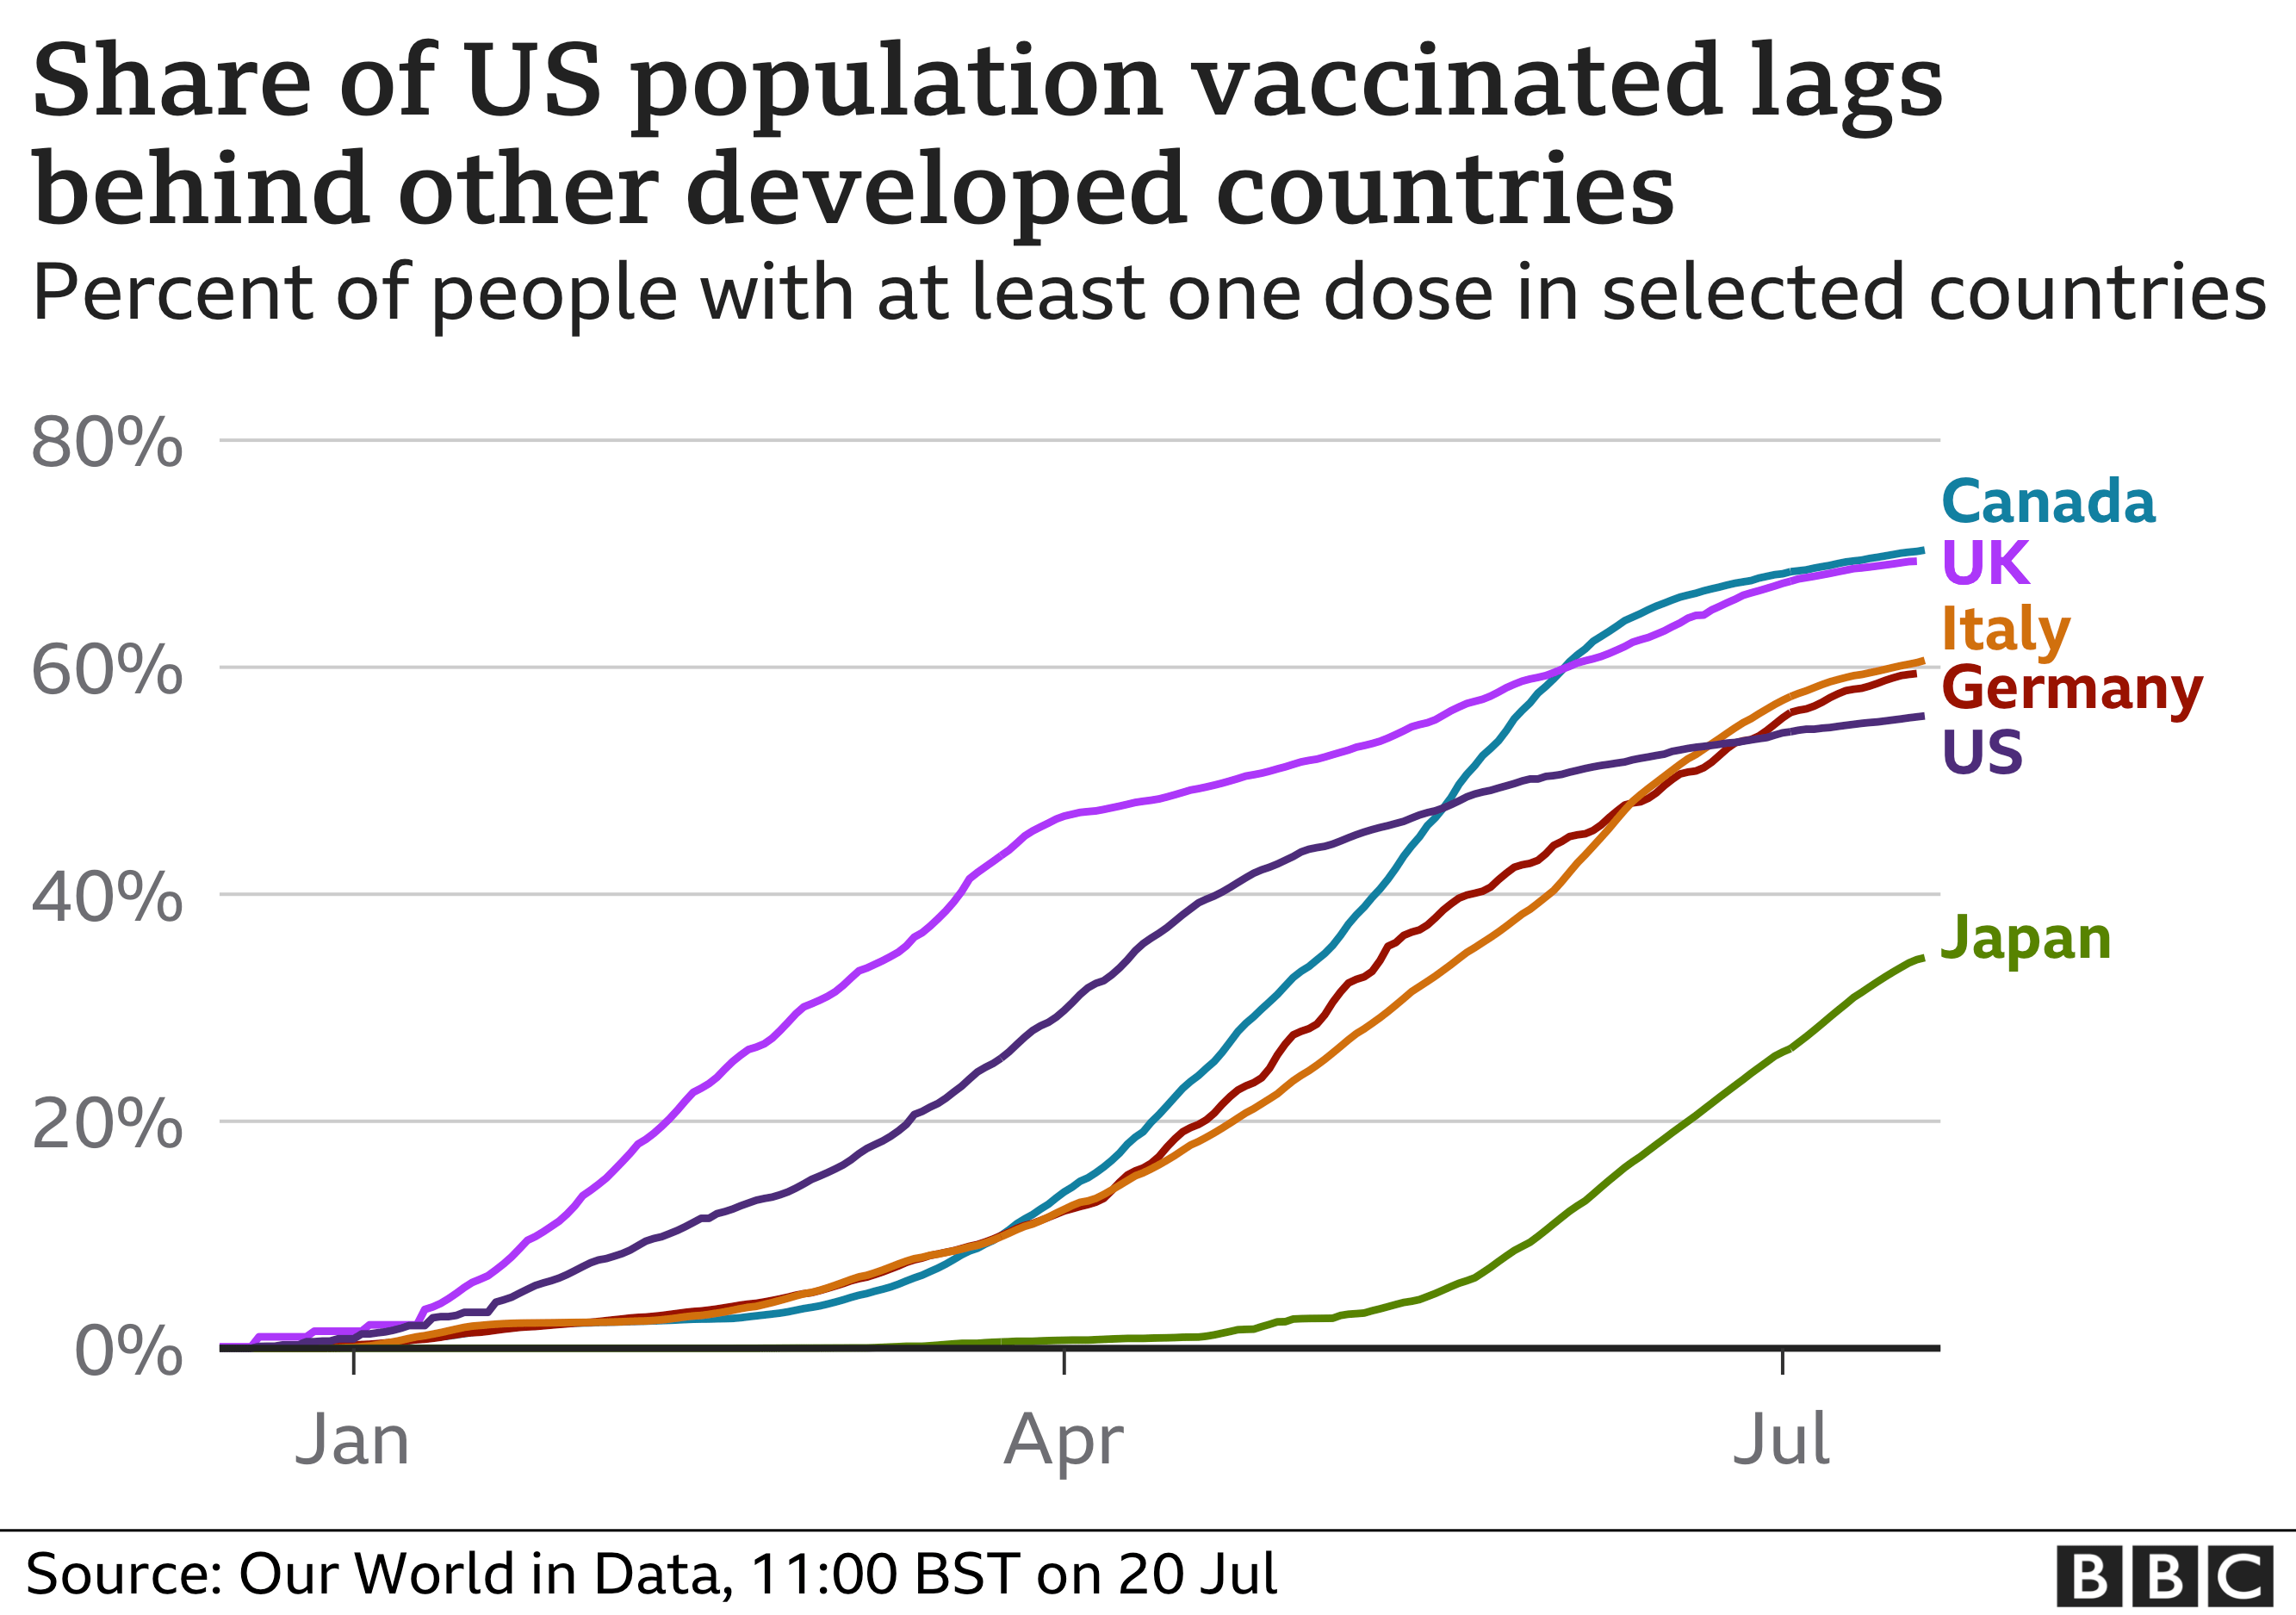 Vaccinations in selected countries